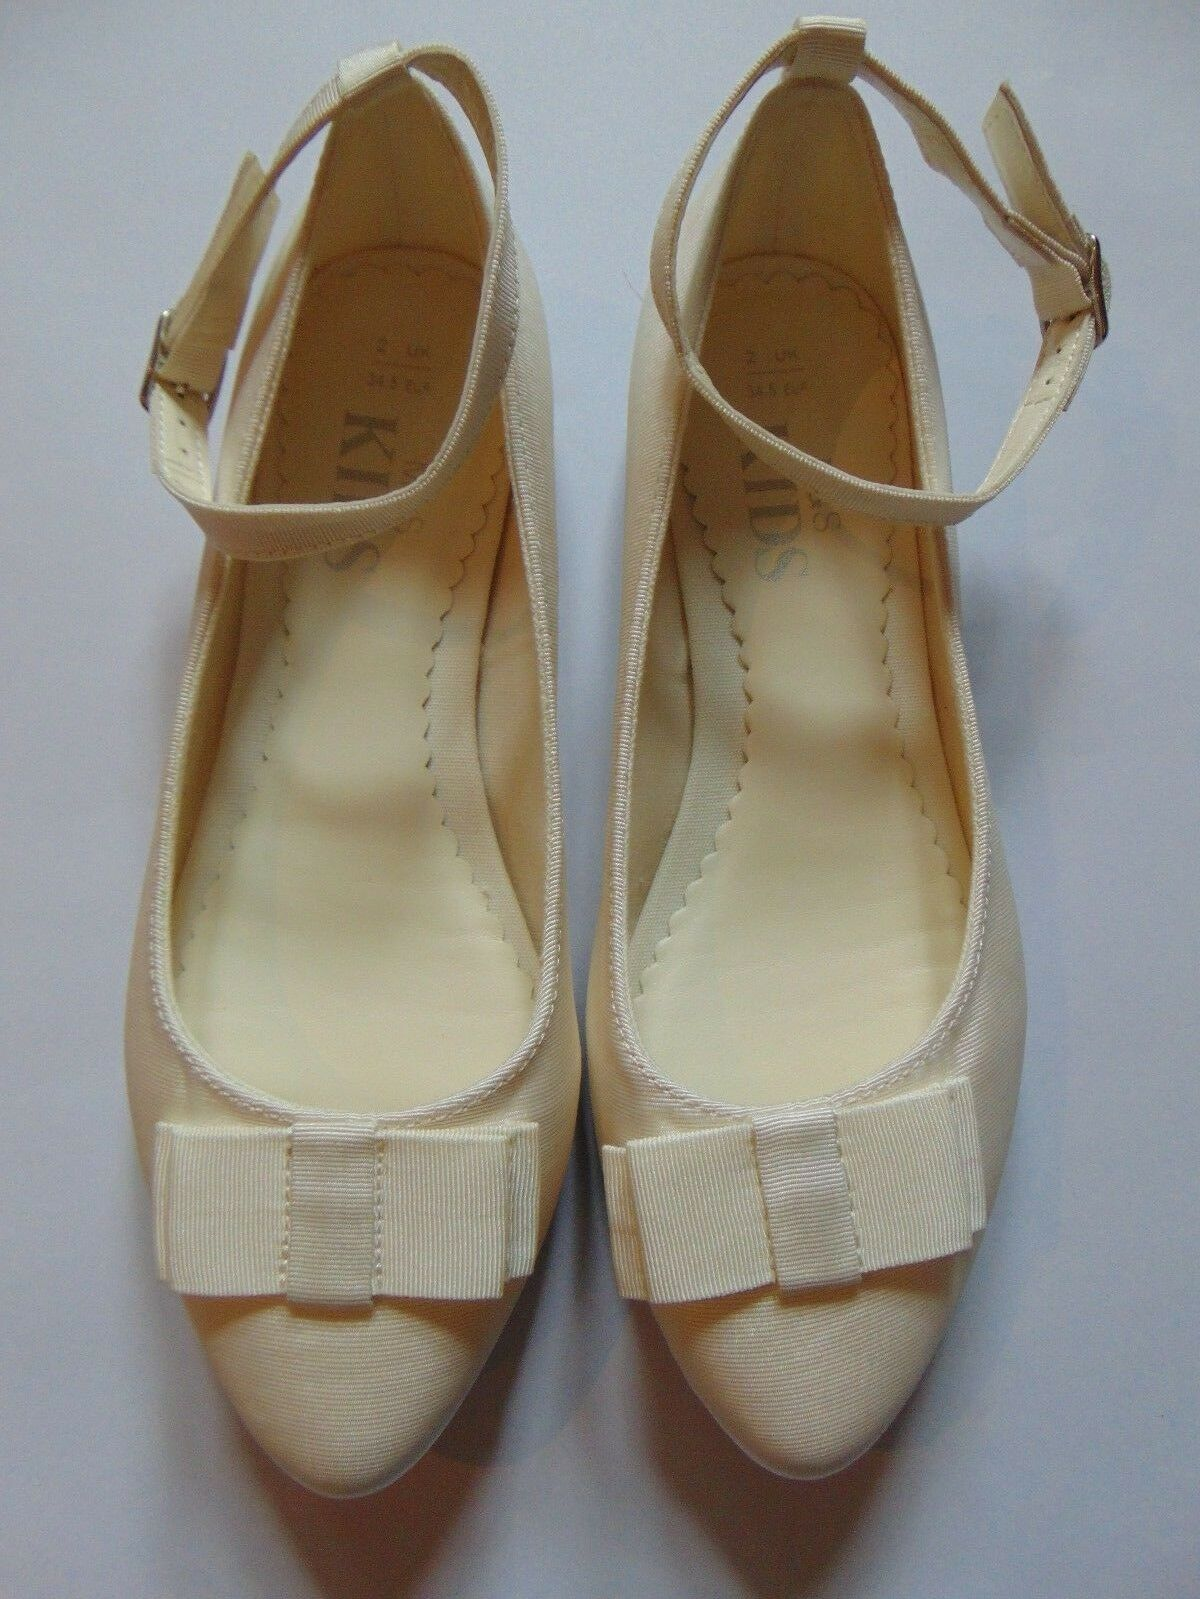 M&S Girls Ivory Bridesmaid Flat Shoes W/Ankle Strap & Bow UK13, 1, 2, 3